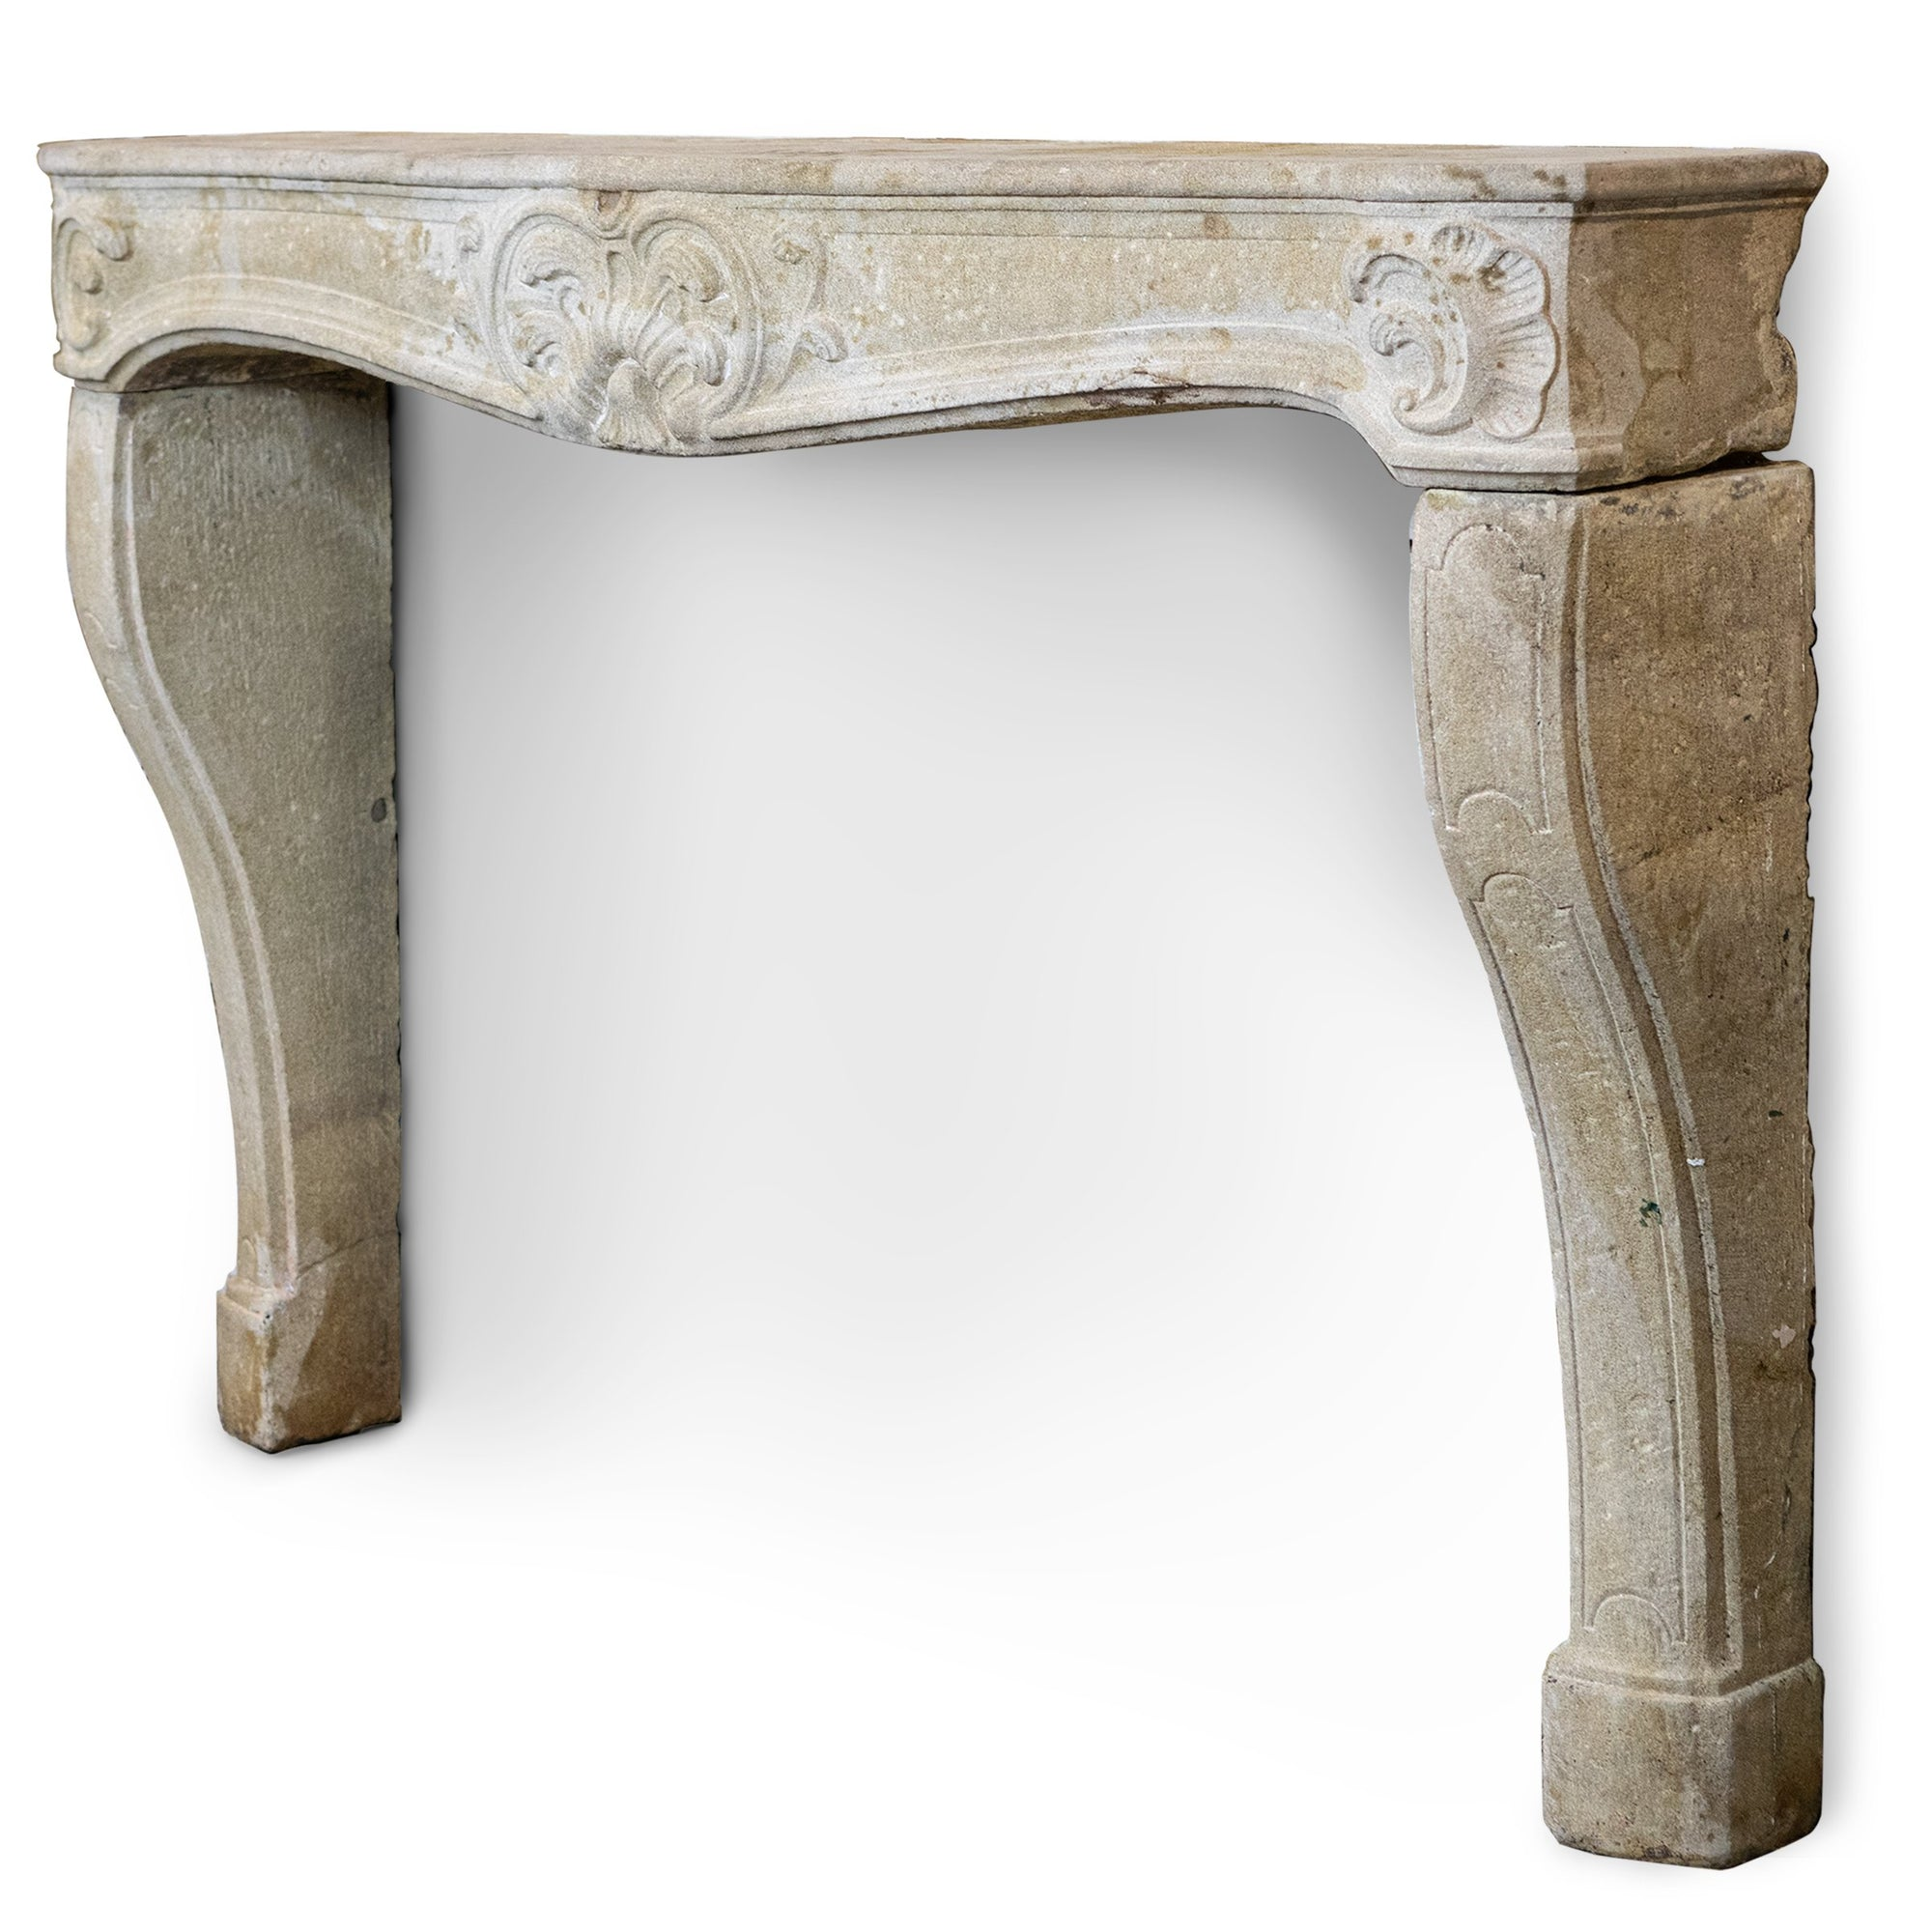 Spectacular Antique 19th Century Stone Fireplace Surround Louis XV